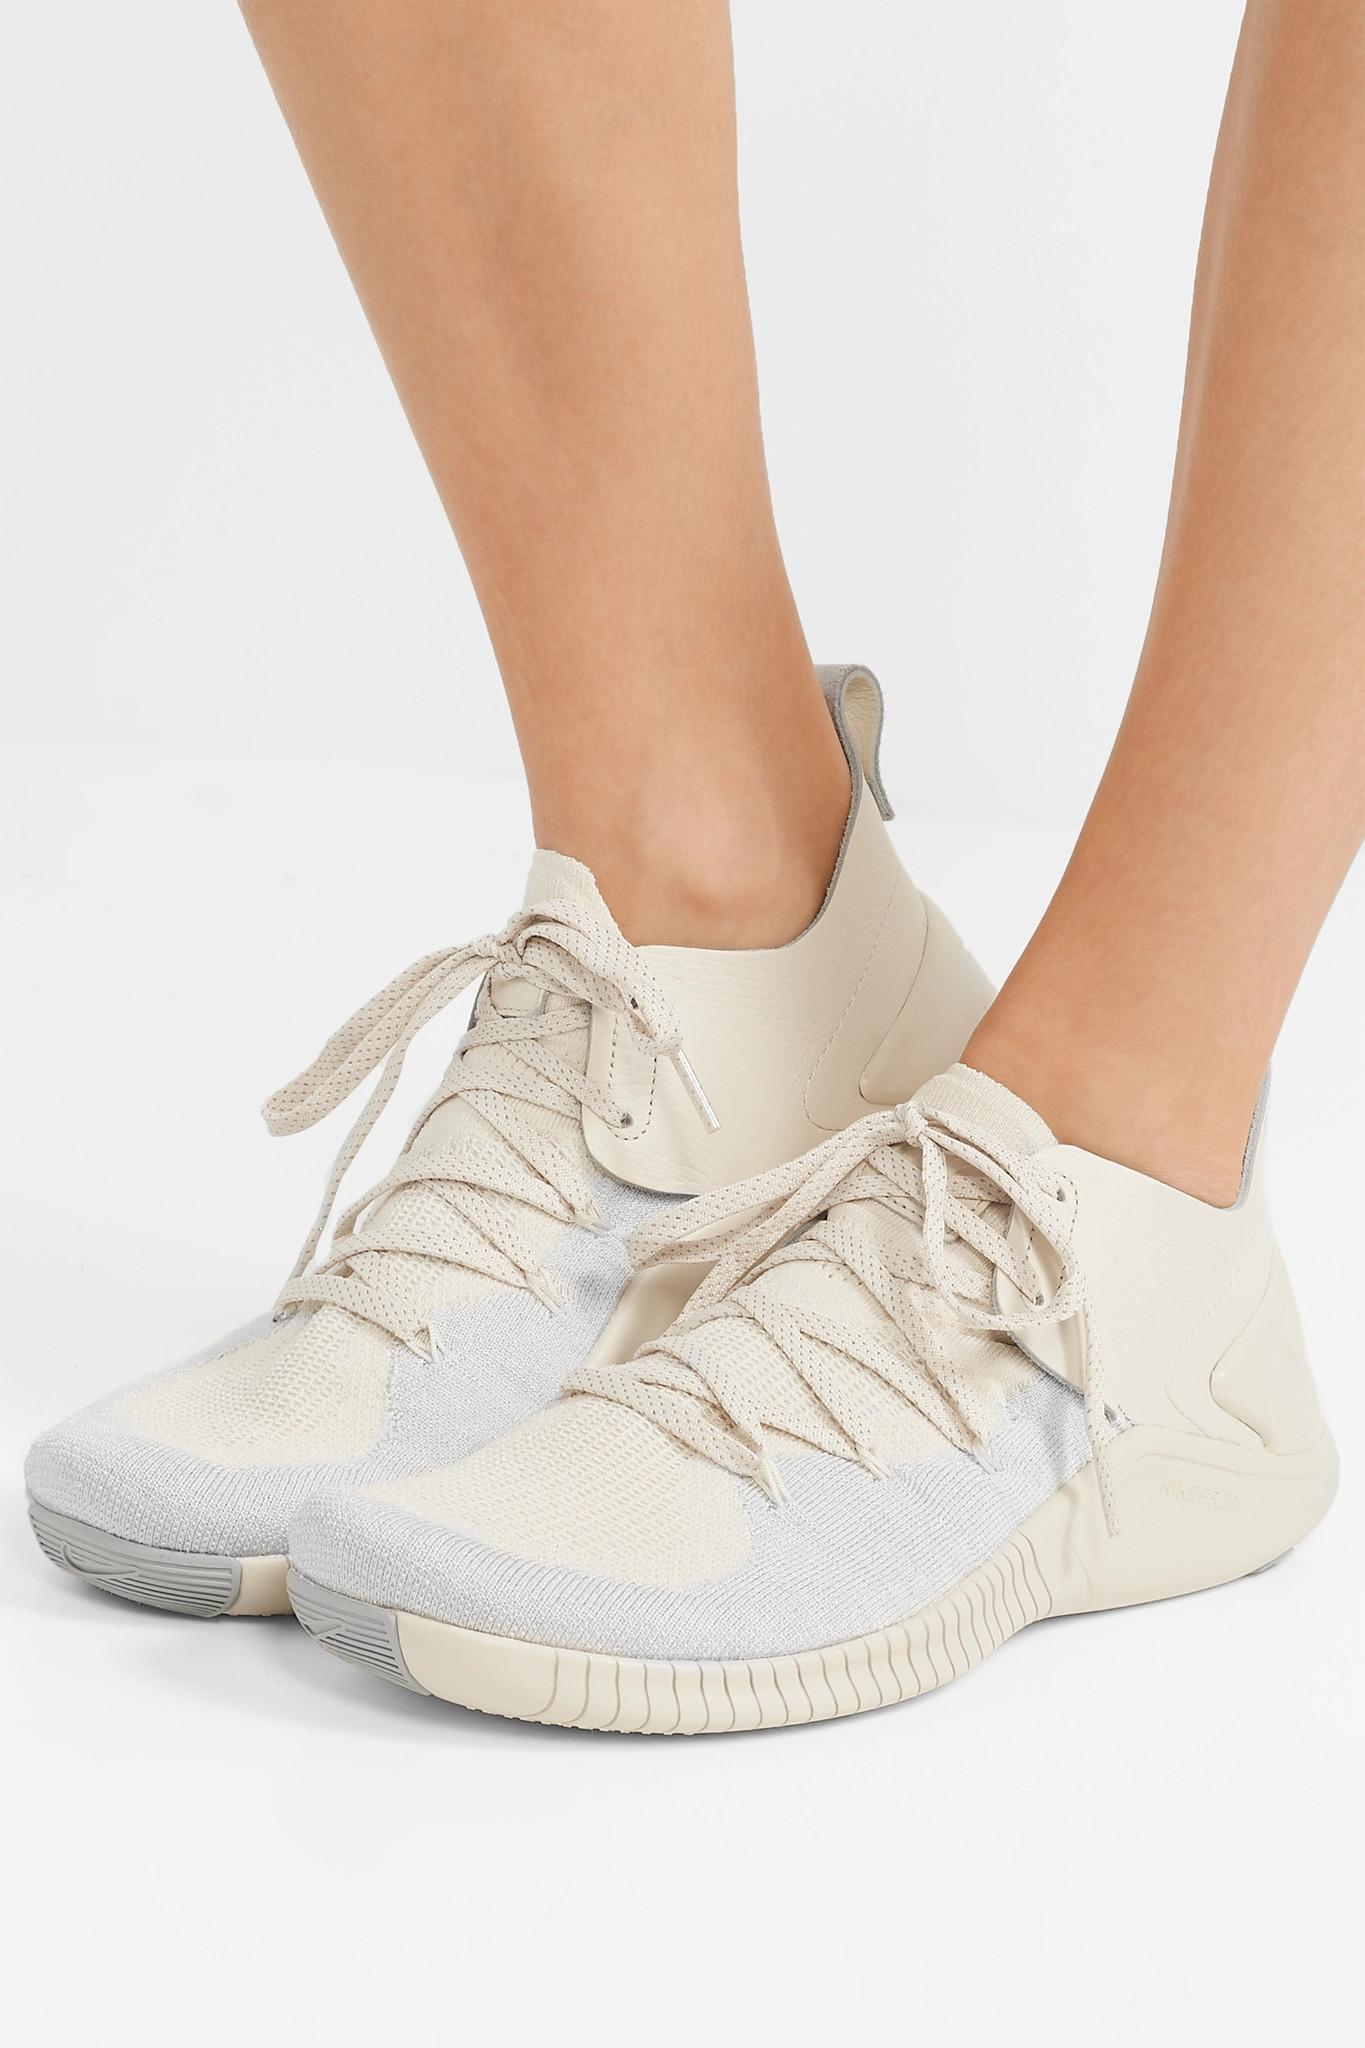 bc6126a017aa1 Lyst - Nike Free Tr 3 Champagne Crinkled Leather-trimmed Flyknit ...